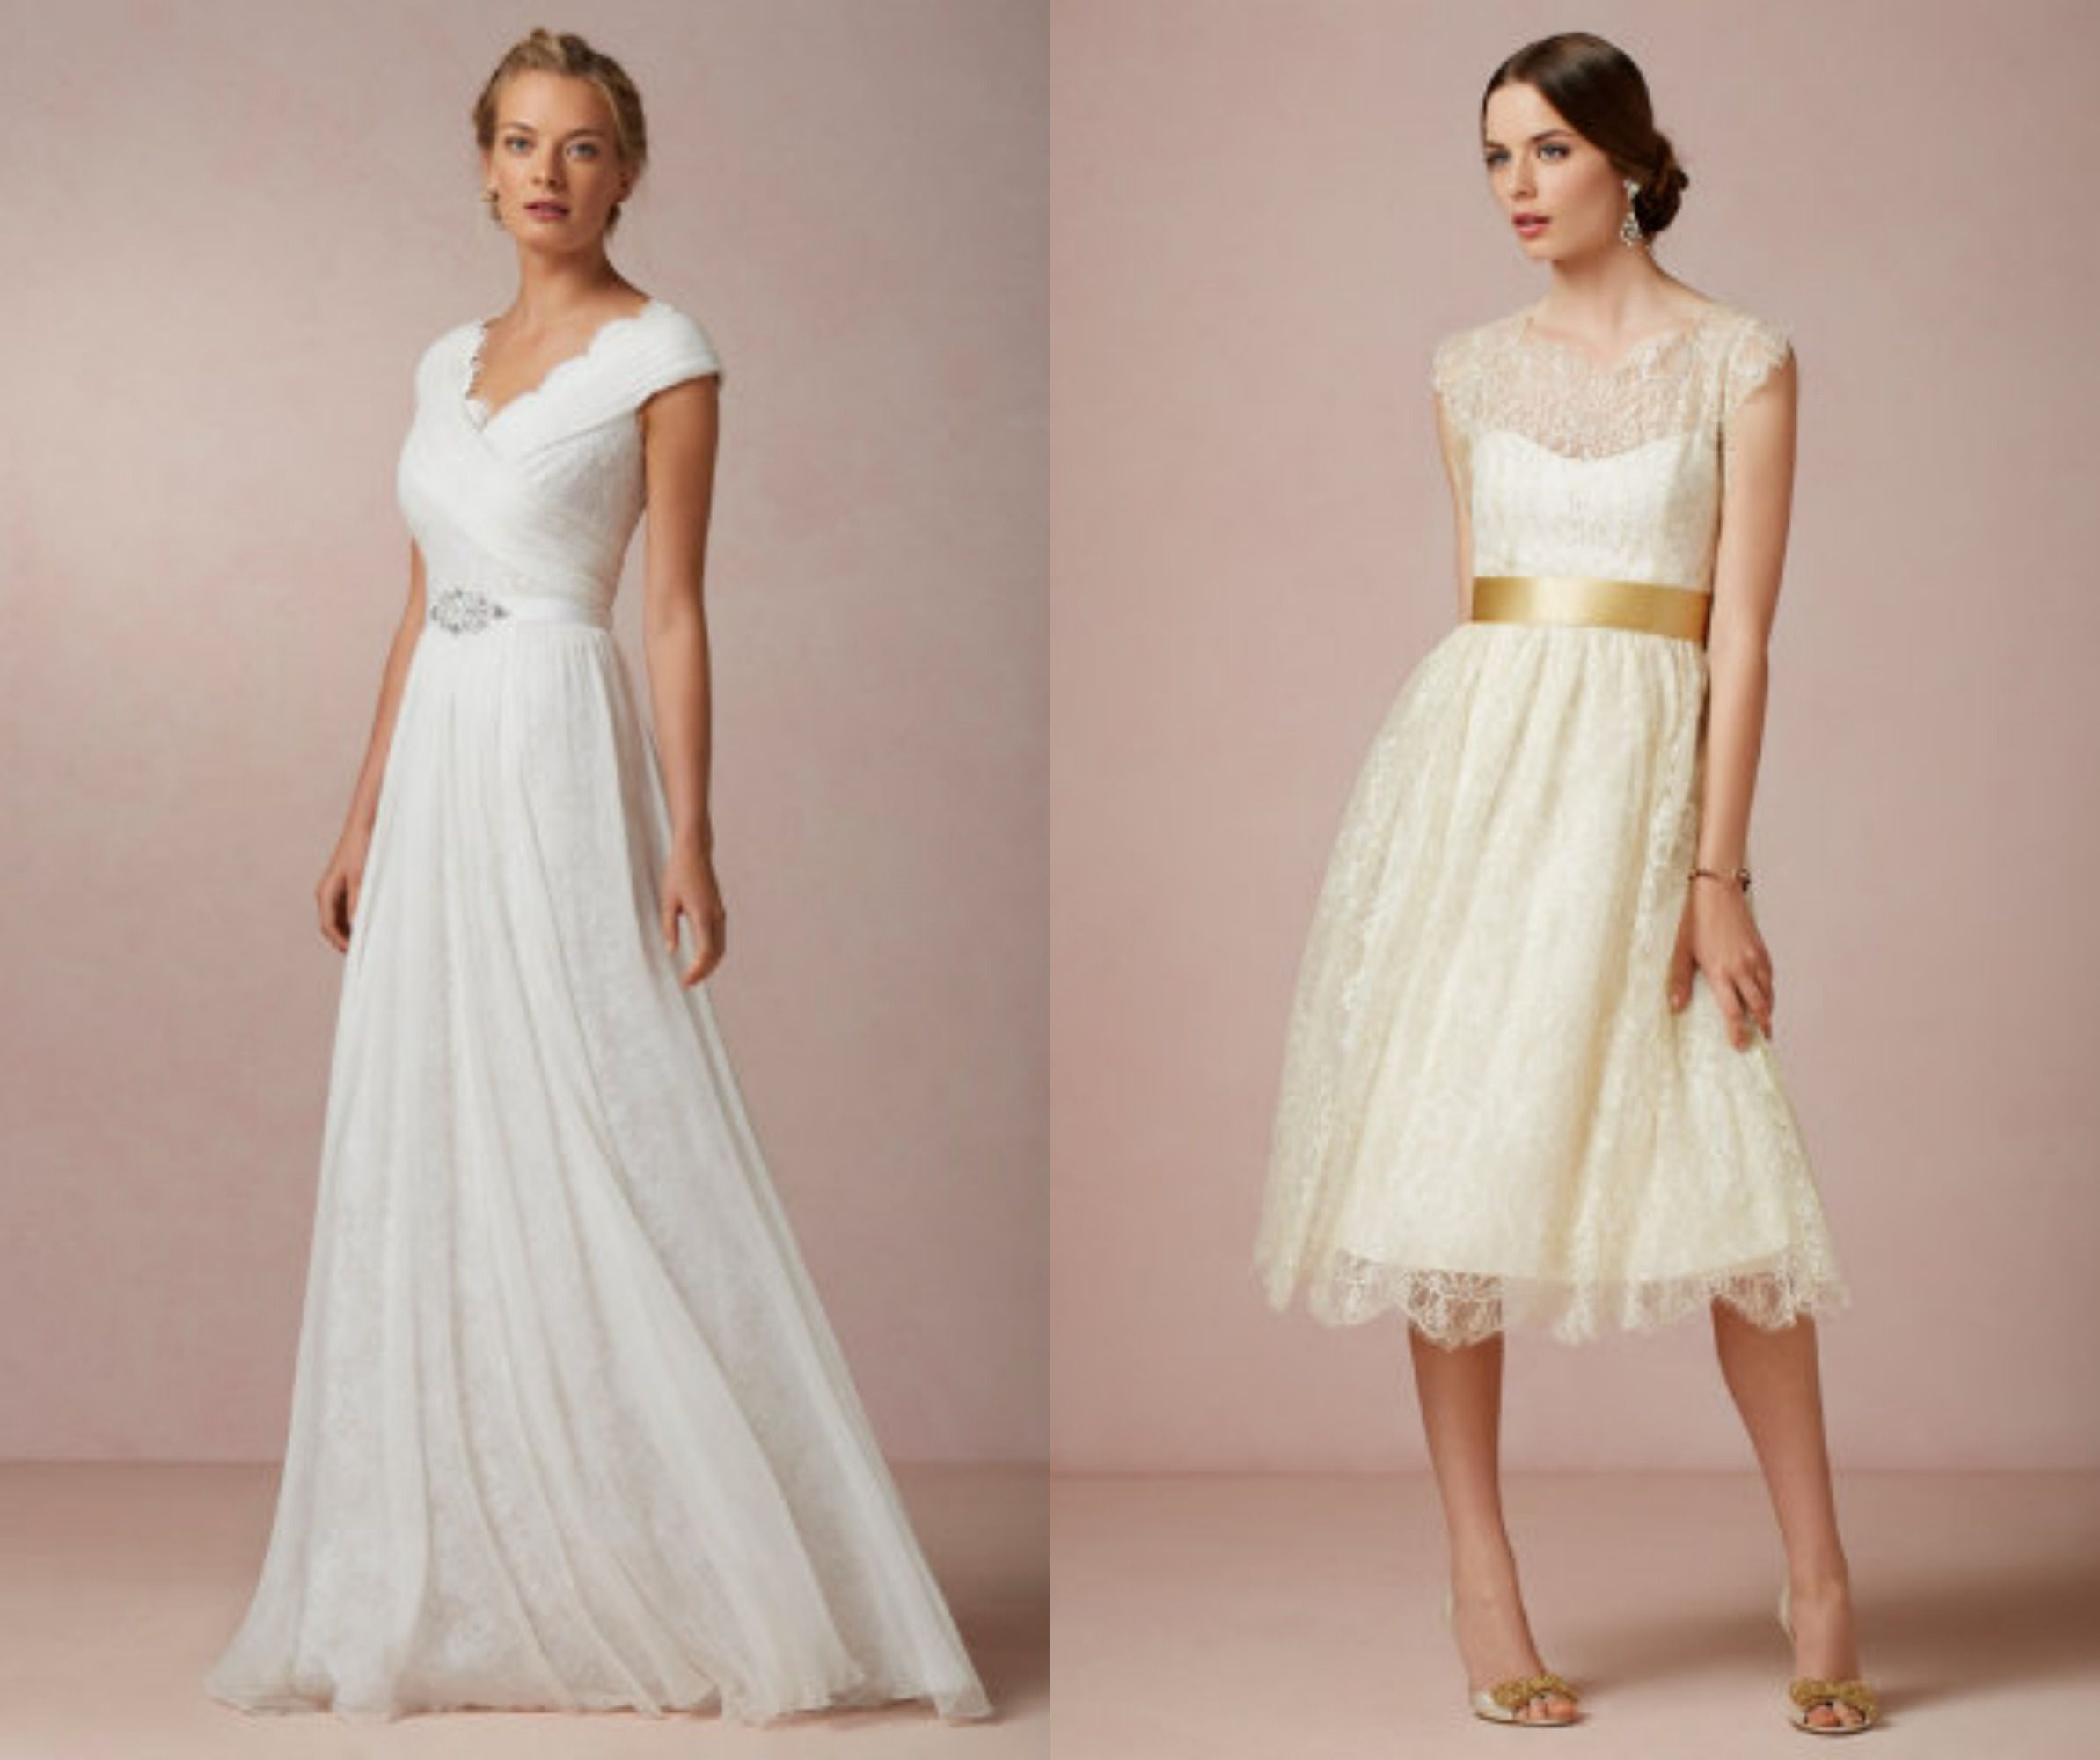 High Neckline Wedding Gowns You Will Want To Wear - Rustic Wedding Chic